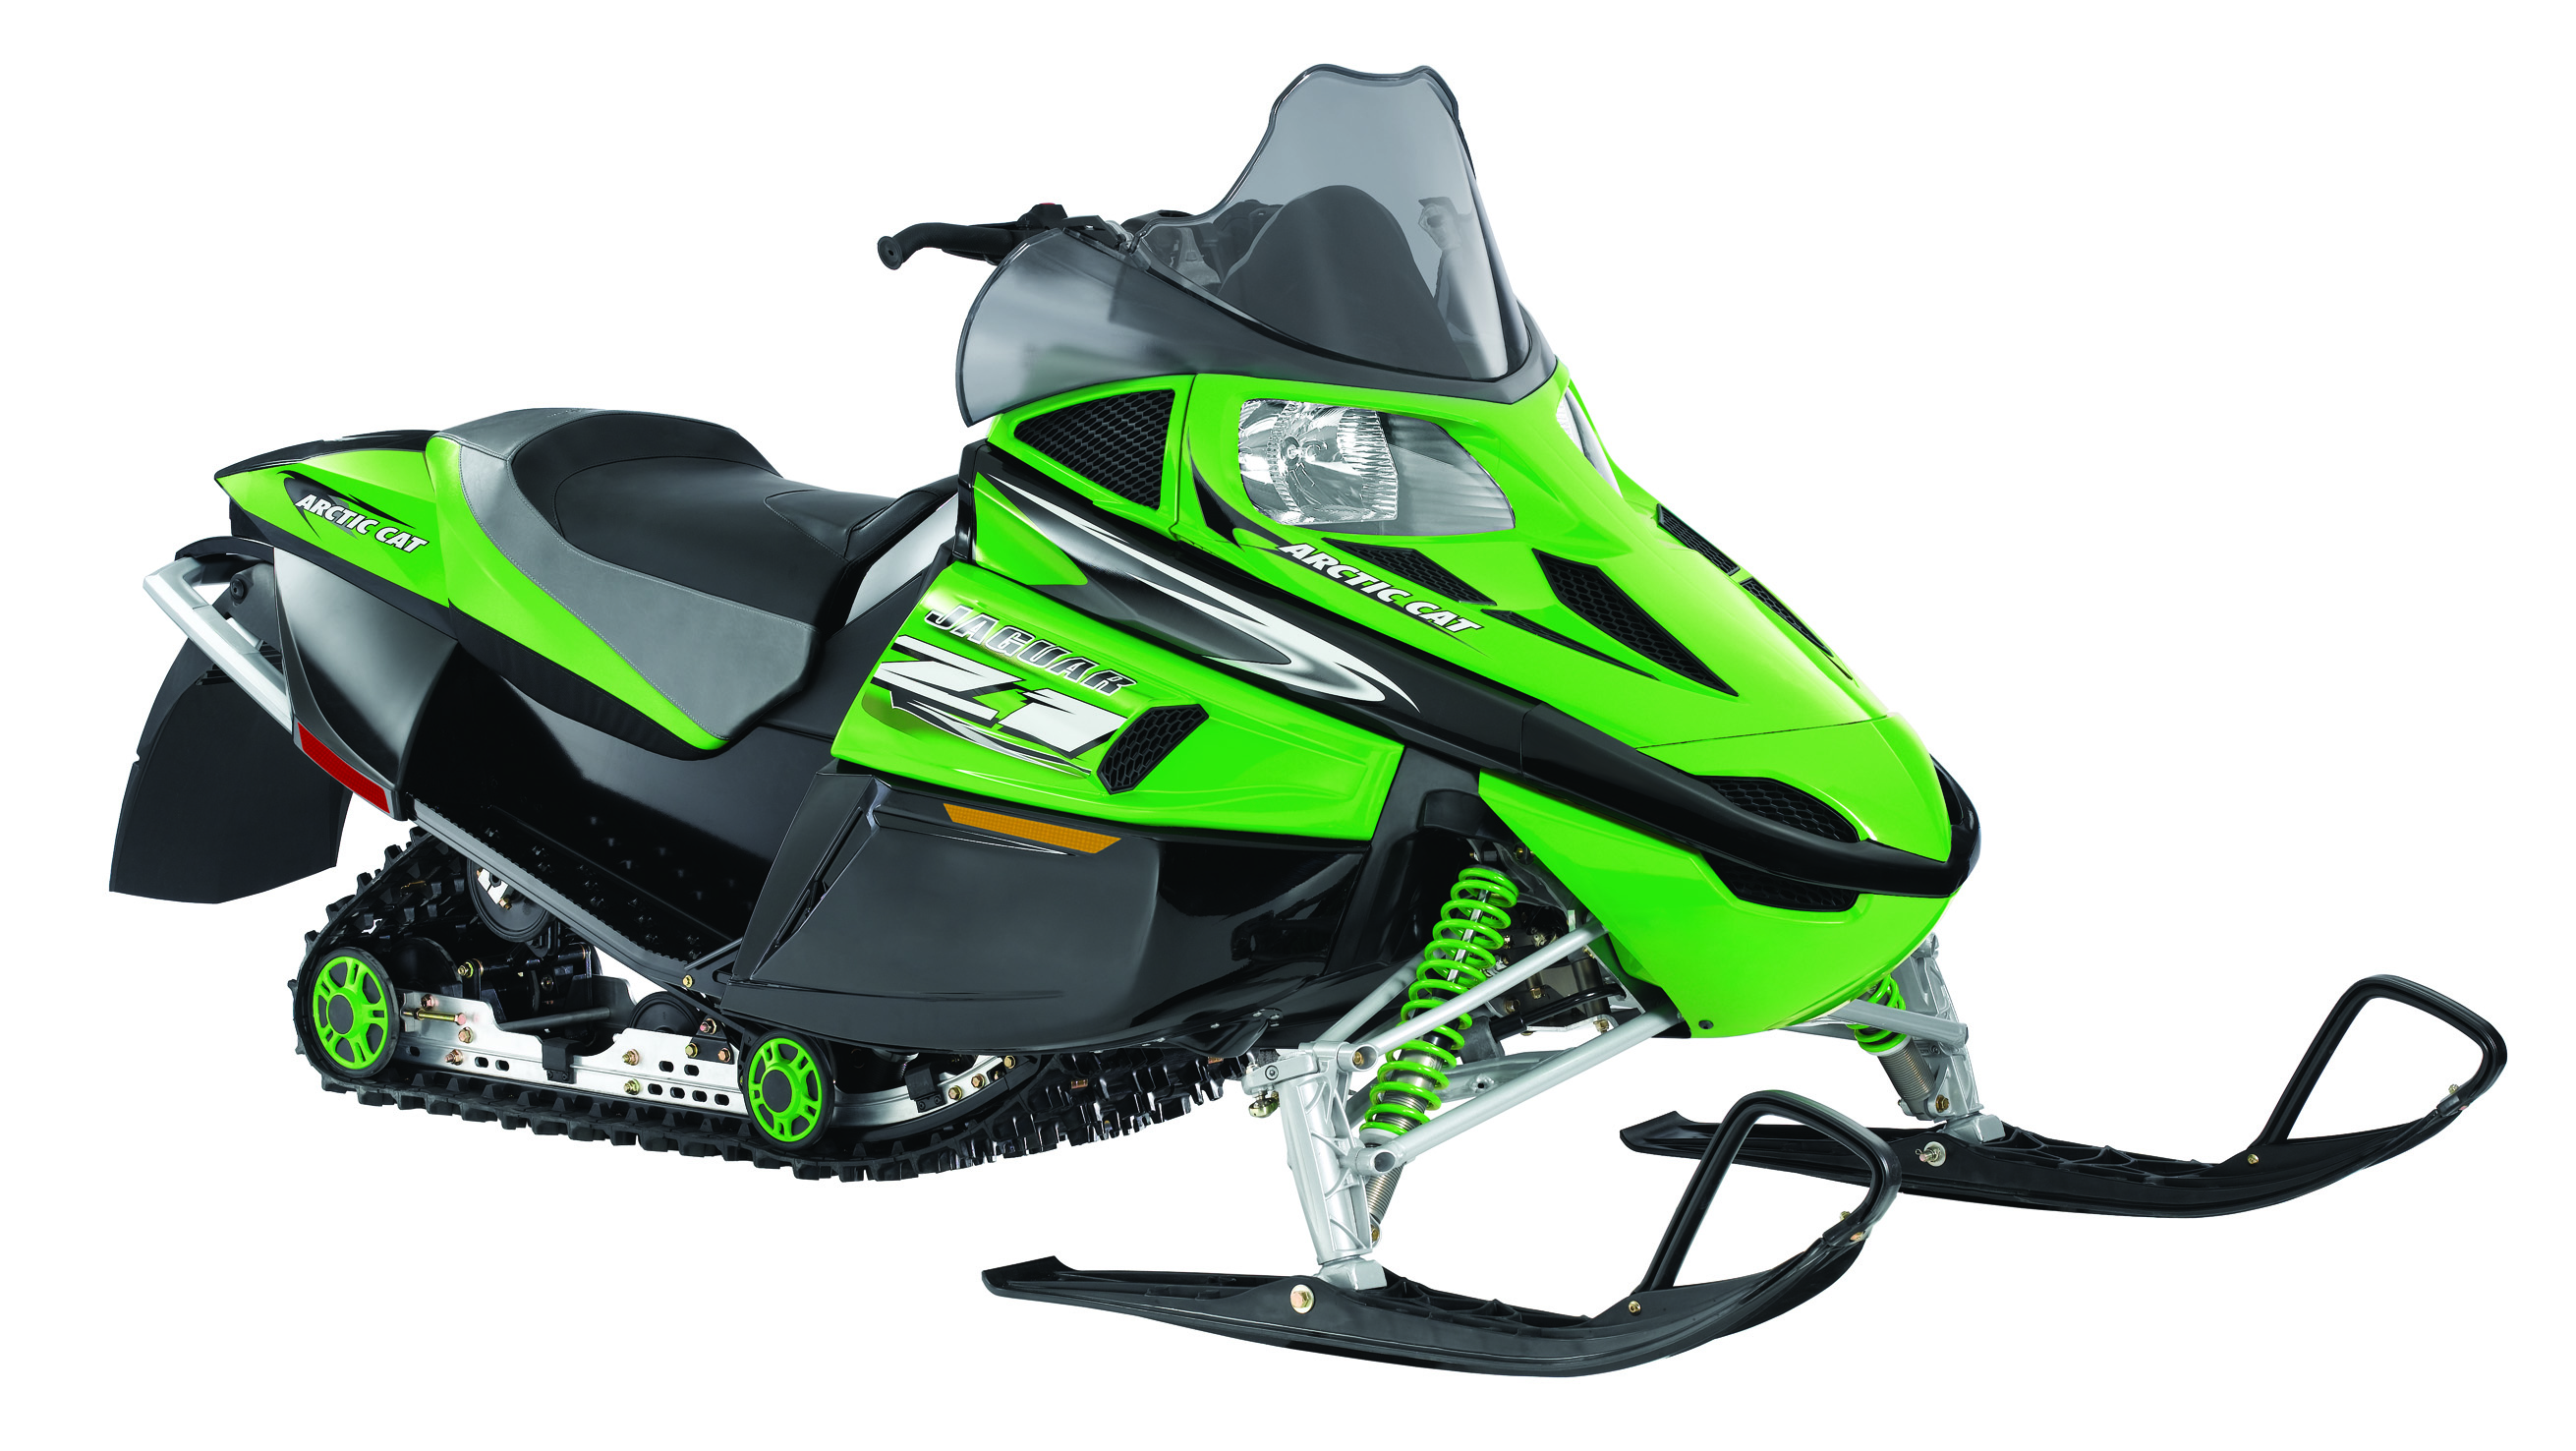 Arctic Cat Recalls Snowmobiles Due To Fire Hazard Recall Alert